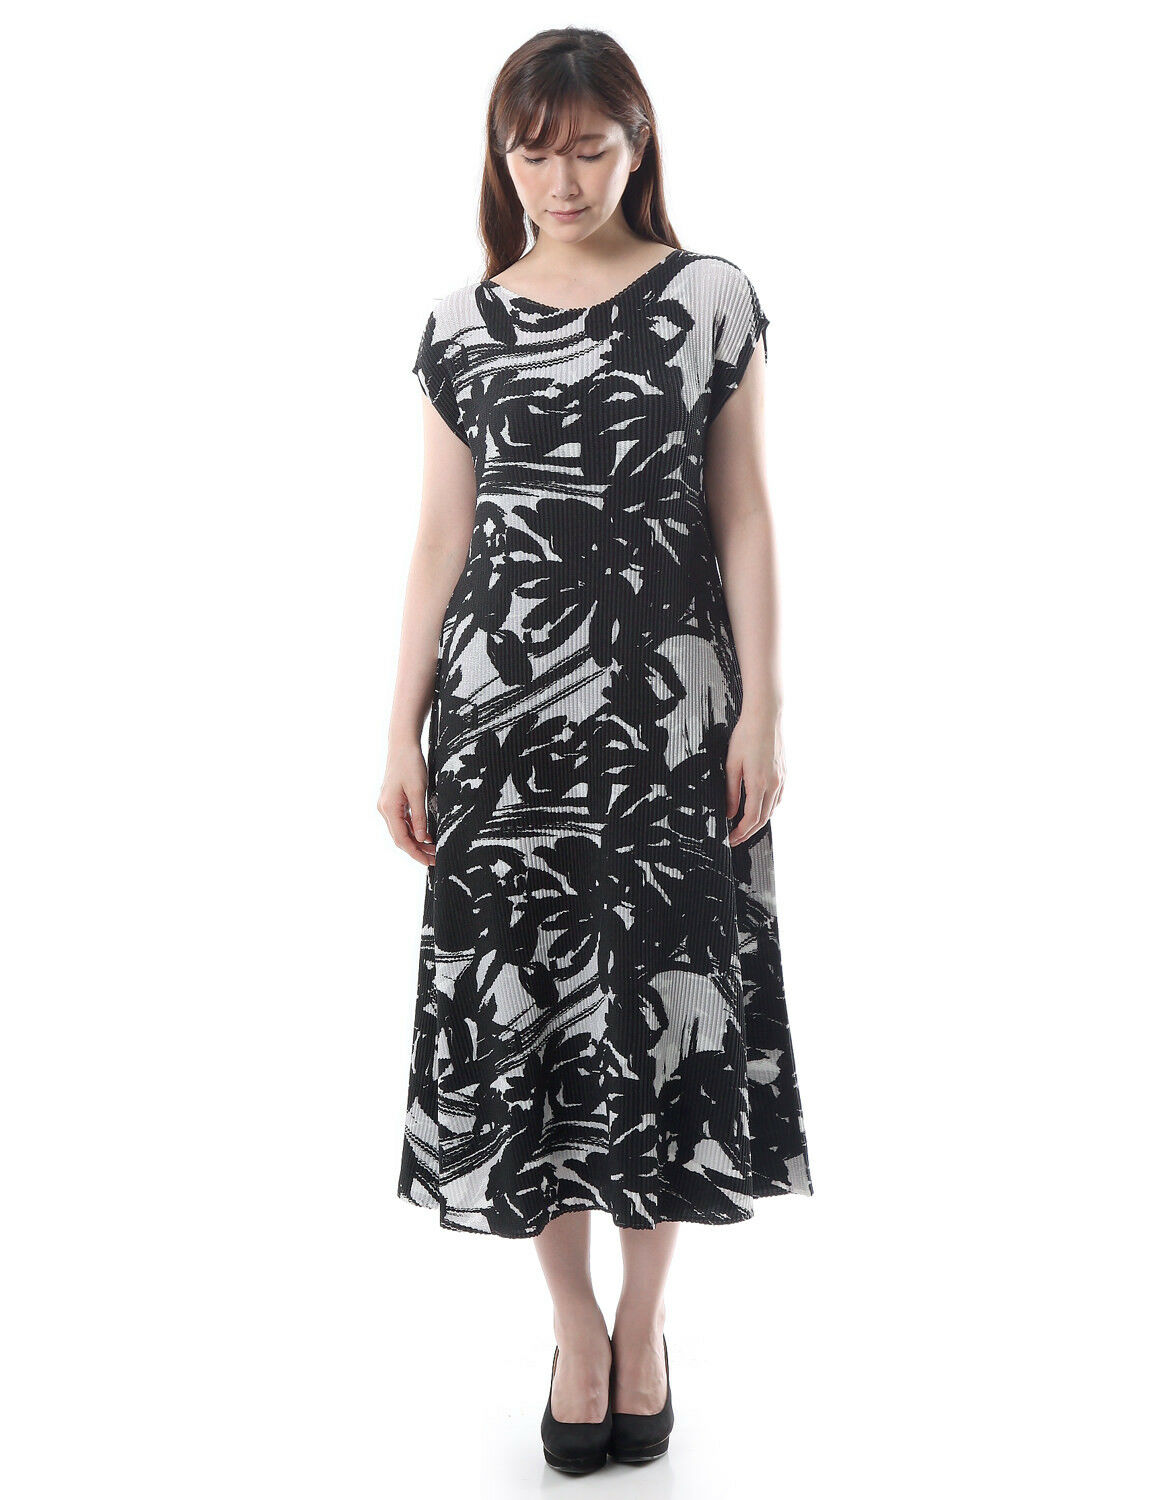 SHUTTLE PLEATS Monotone Botanical print french sleeve A line Dress 2-28.